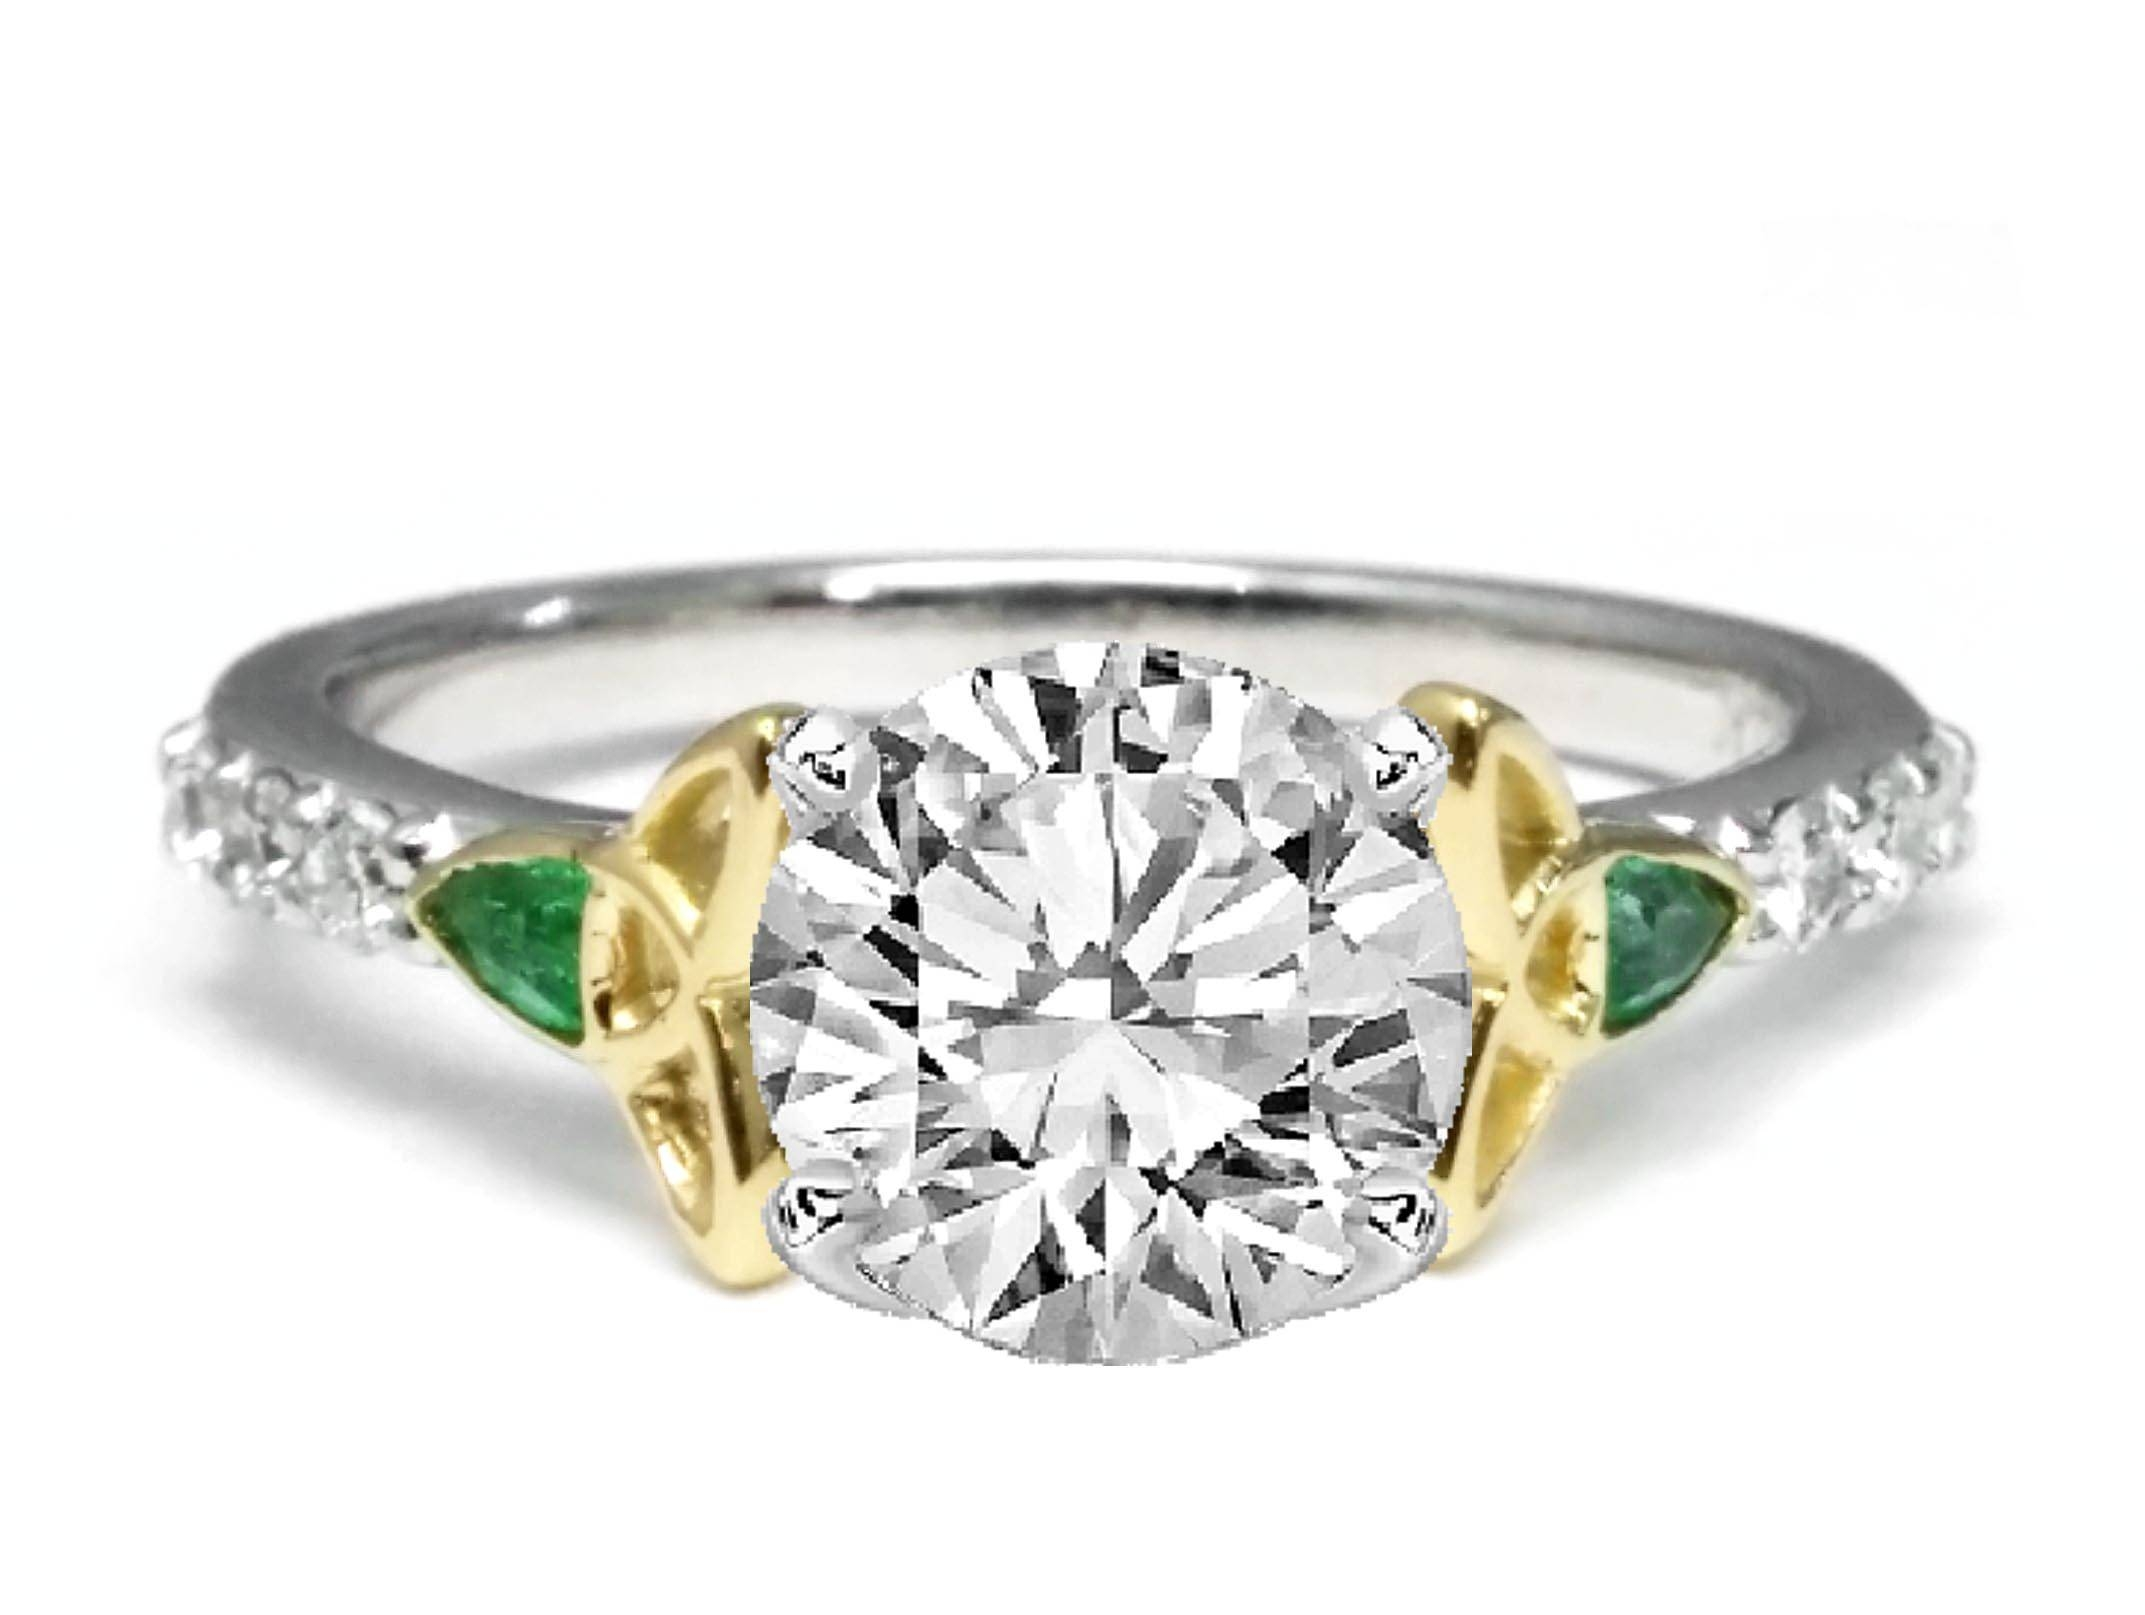 Celtic – Engagement Rings From Mdc Diamonds Nyc With Emerald Celtic Engagement Rings (View 3 of 15)